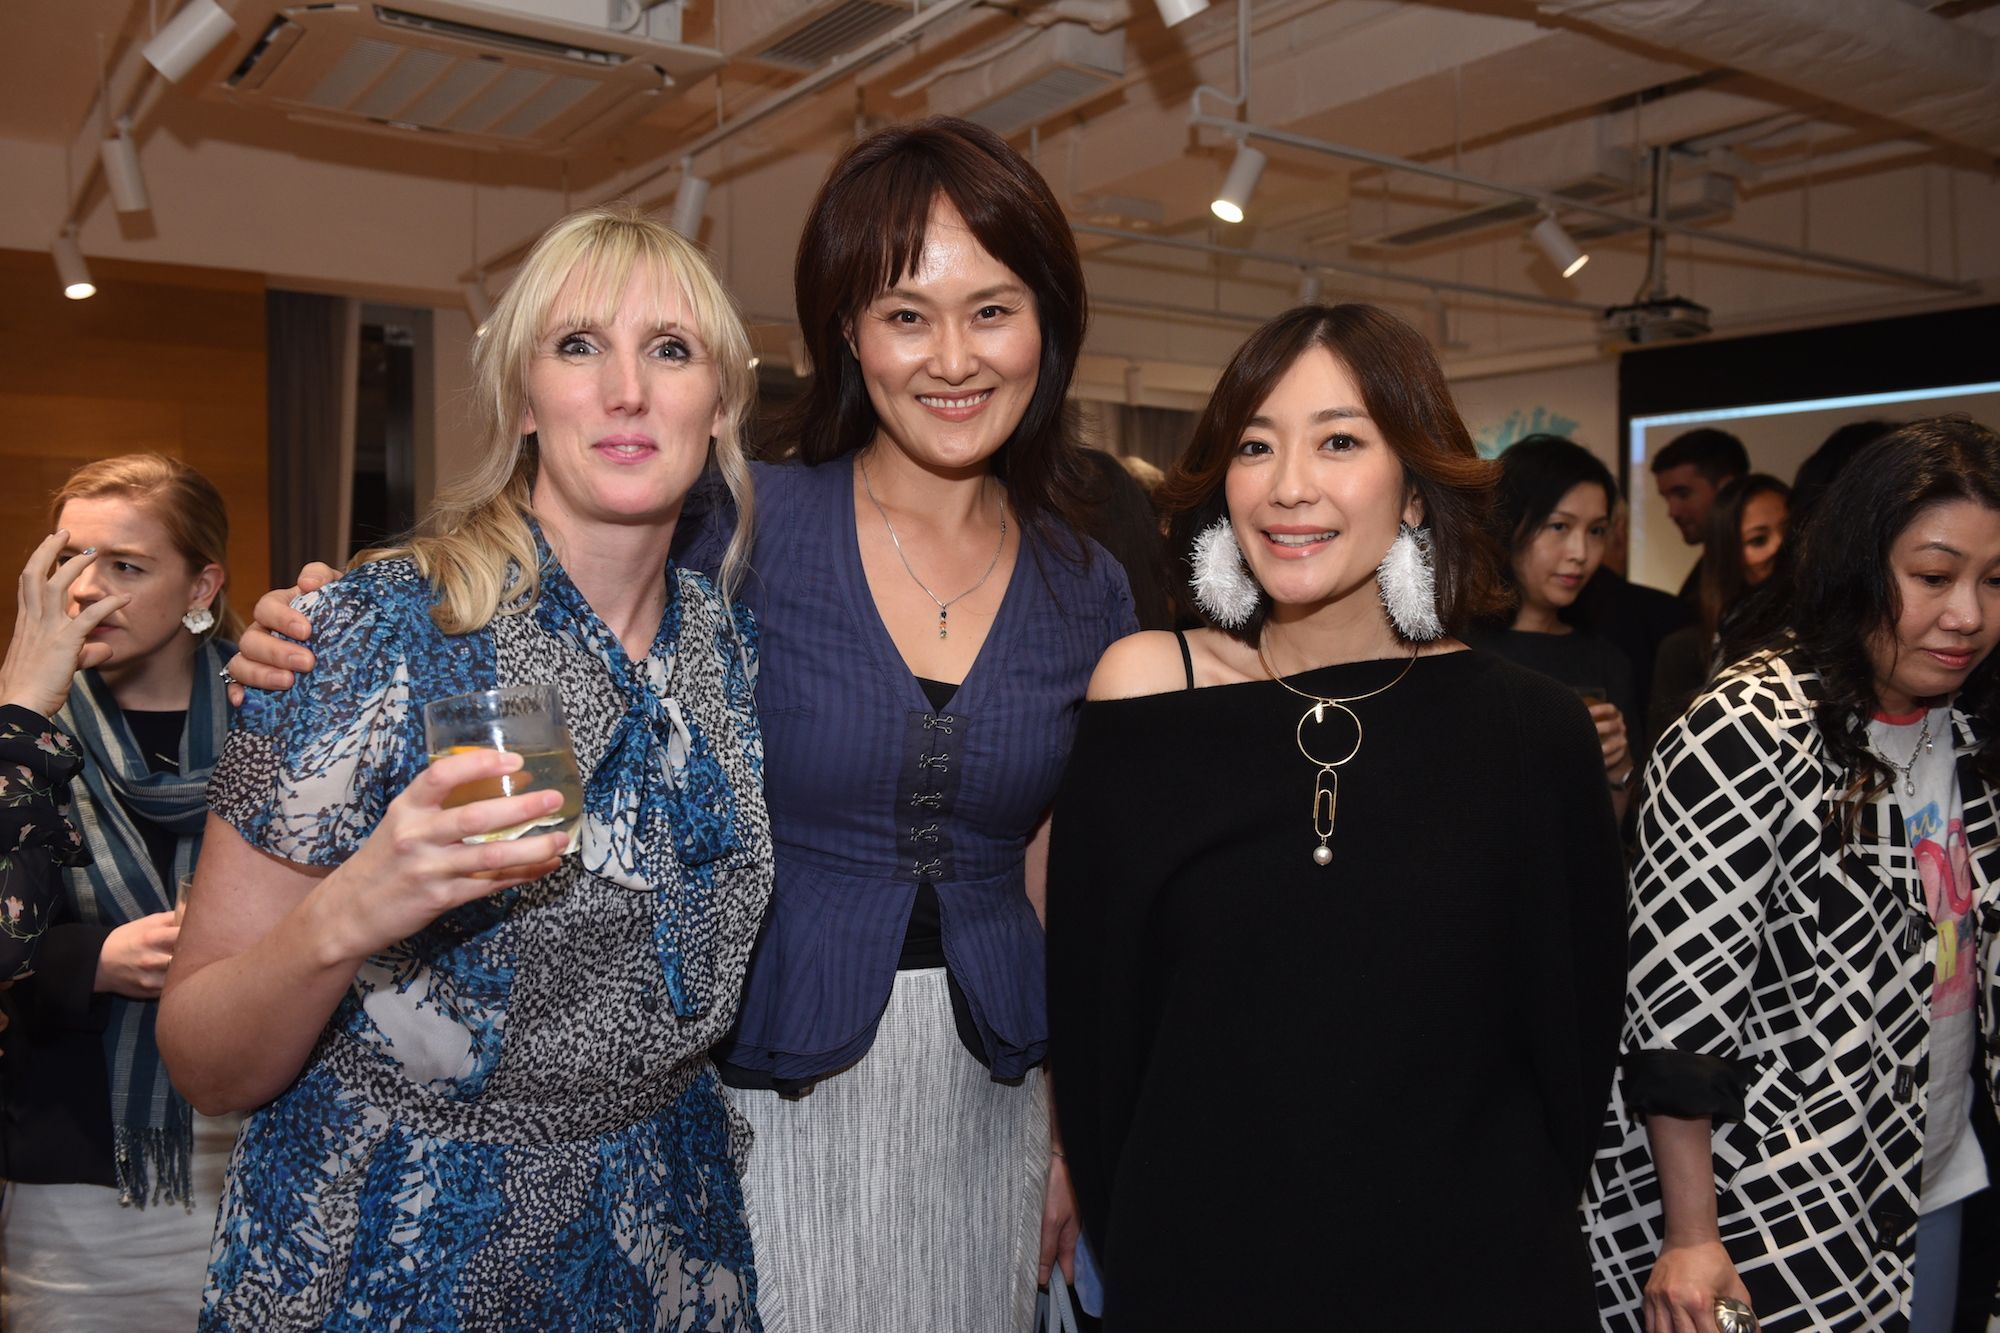 Laura Derry, Julie Lee, Nicola Cheung-Young